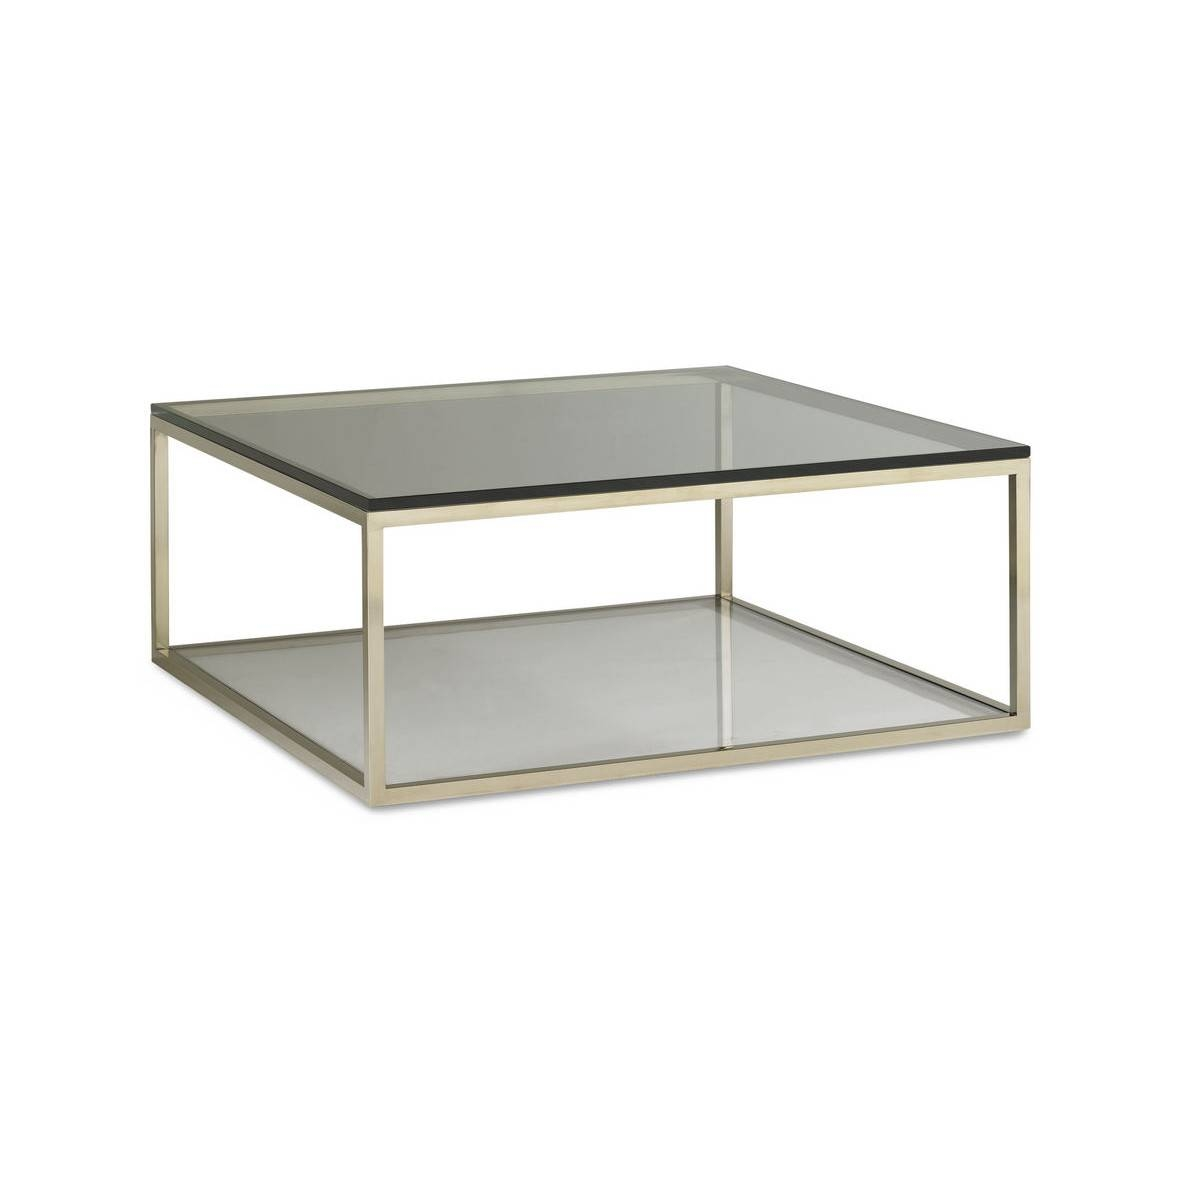 Glass Square Coffee Table – Jericho Mafjar Project With Regard To Chrome And Wood Coffee Tables (View 13 of 30)